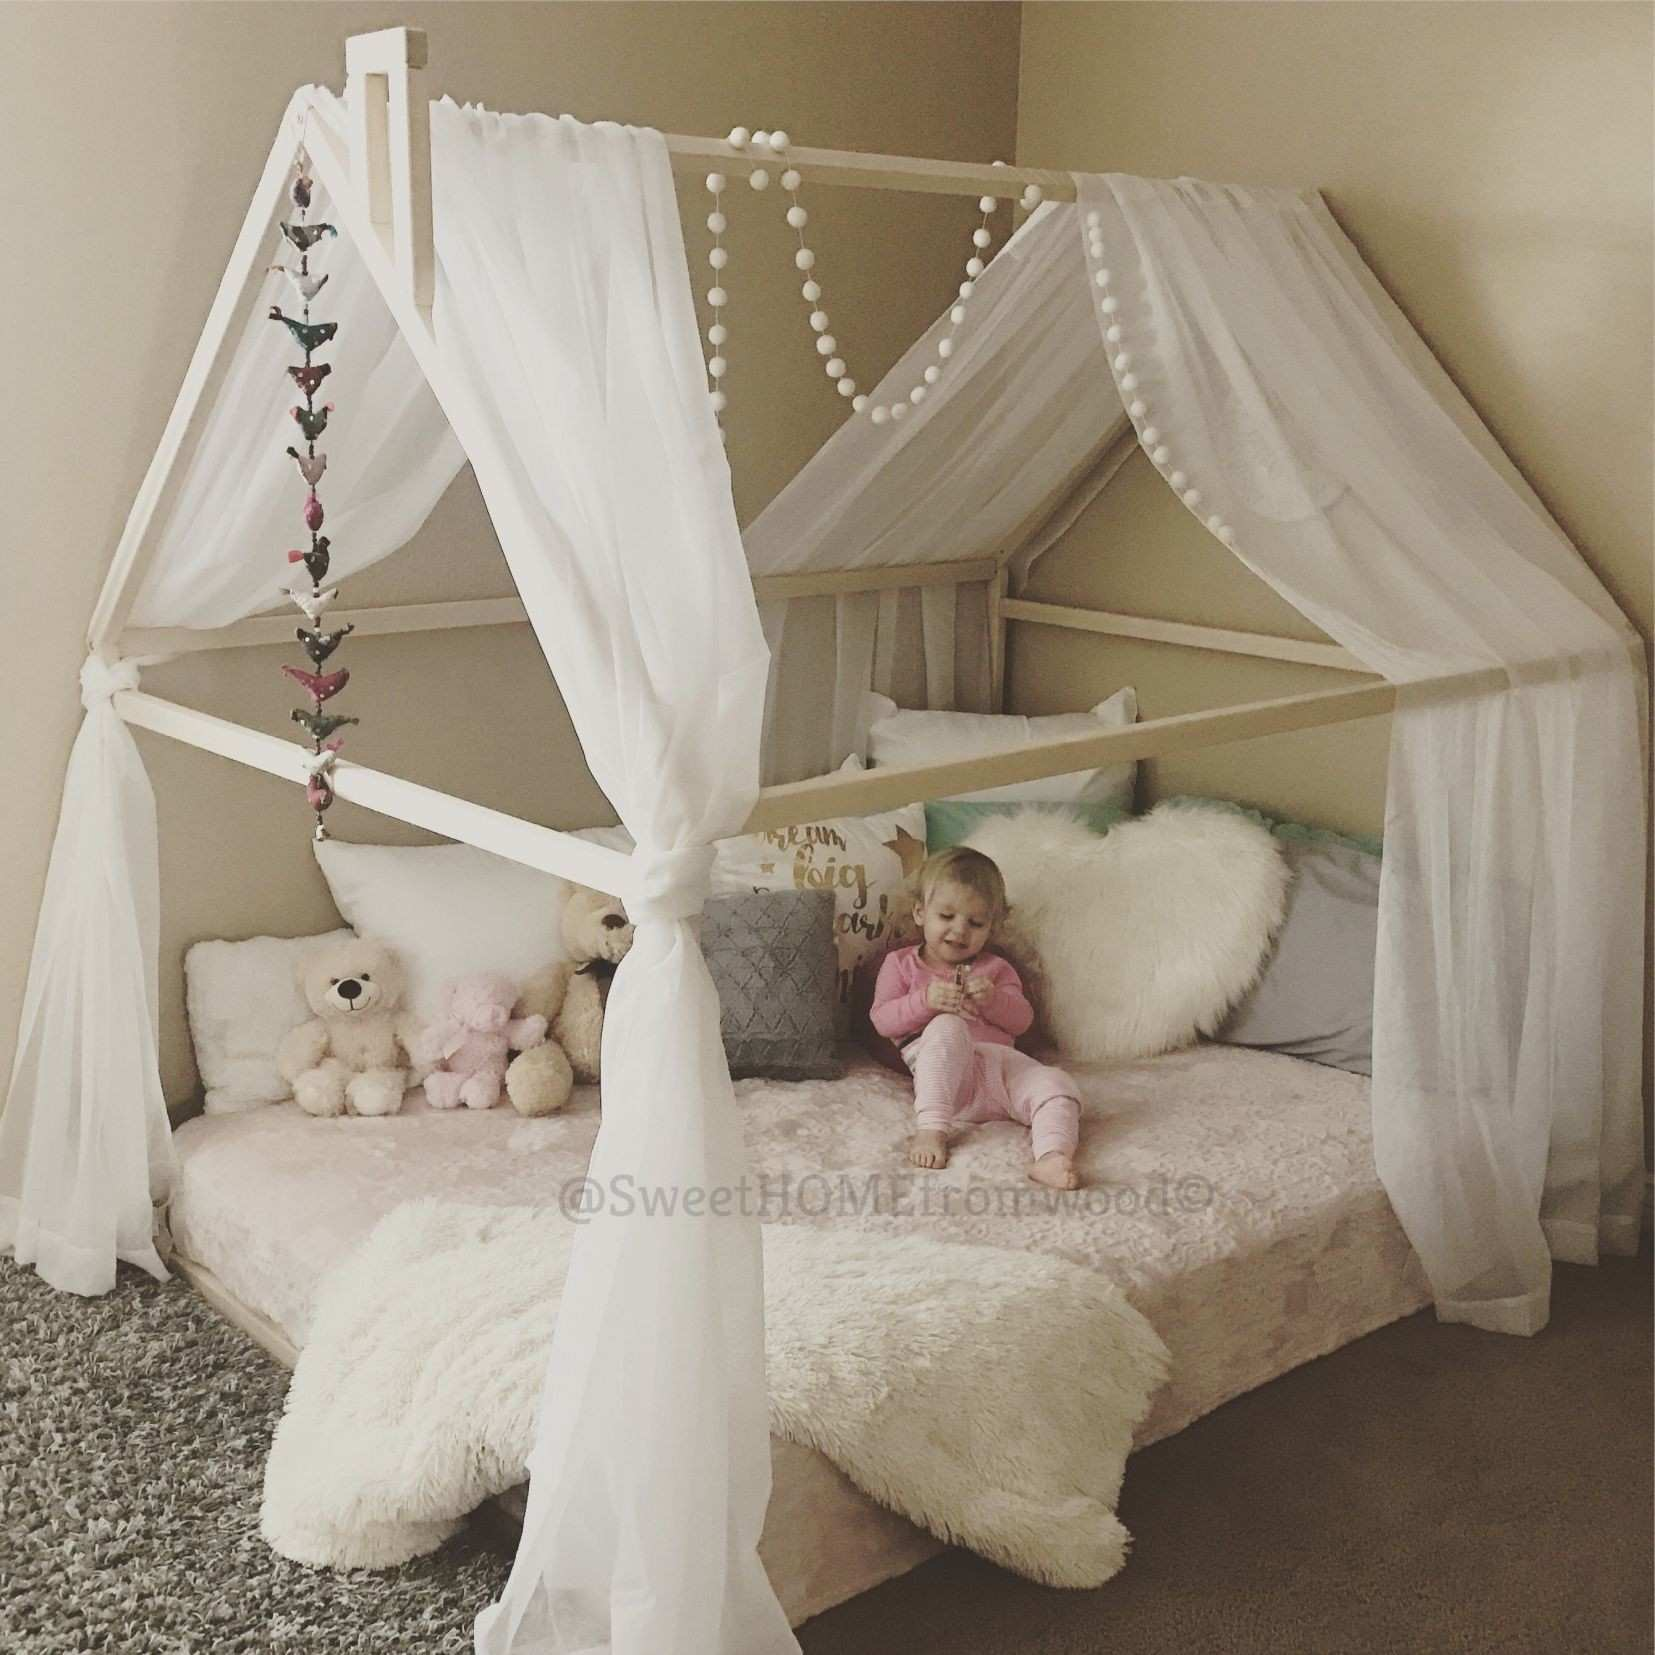 50 Cute toddler Beds Wall Decor Ideas for Bedroom Check more at